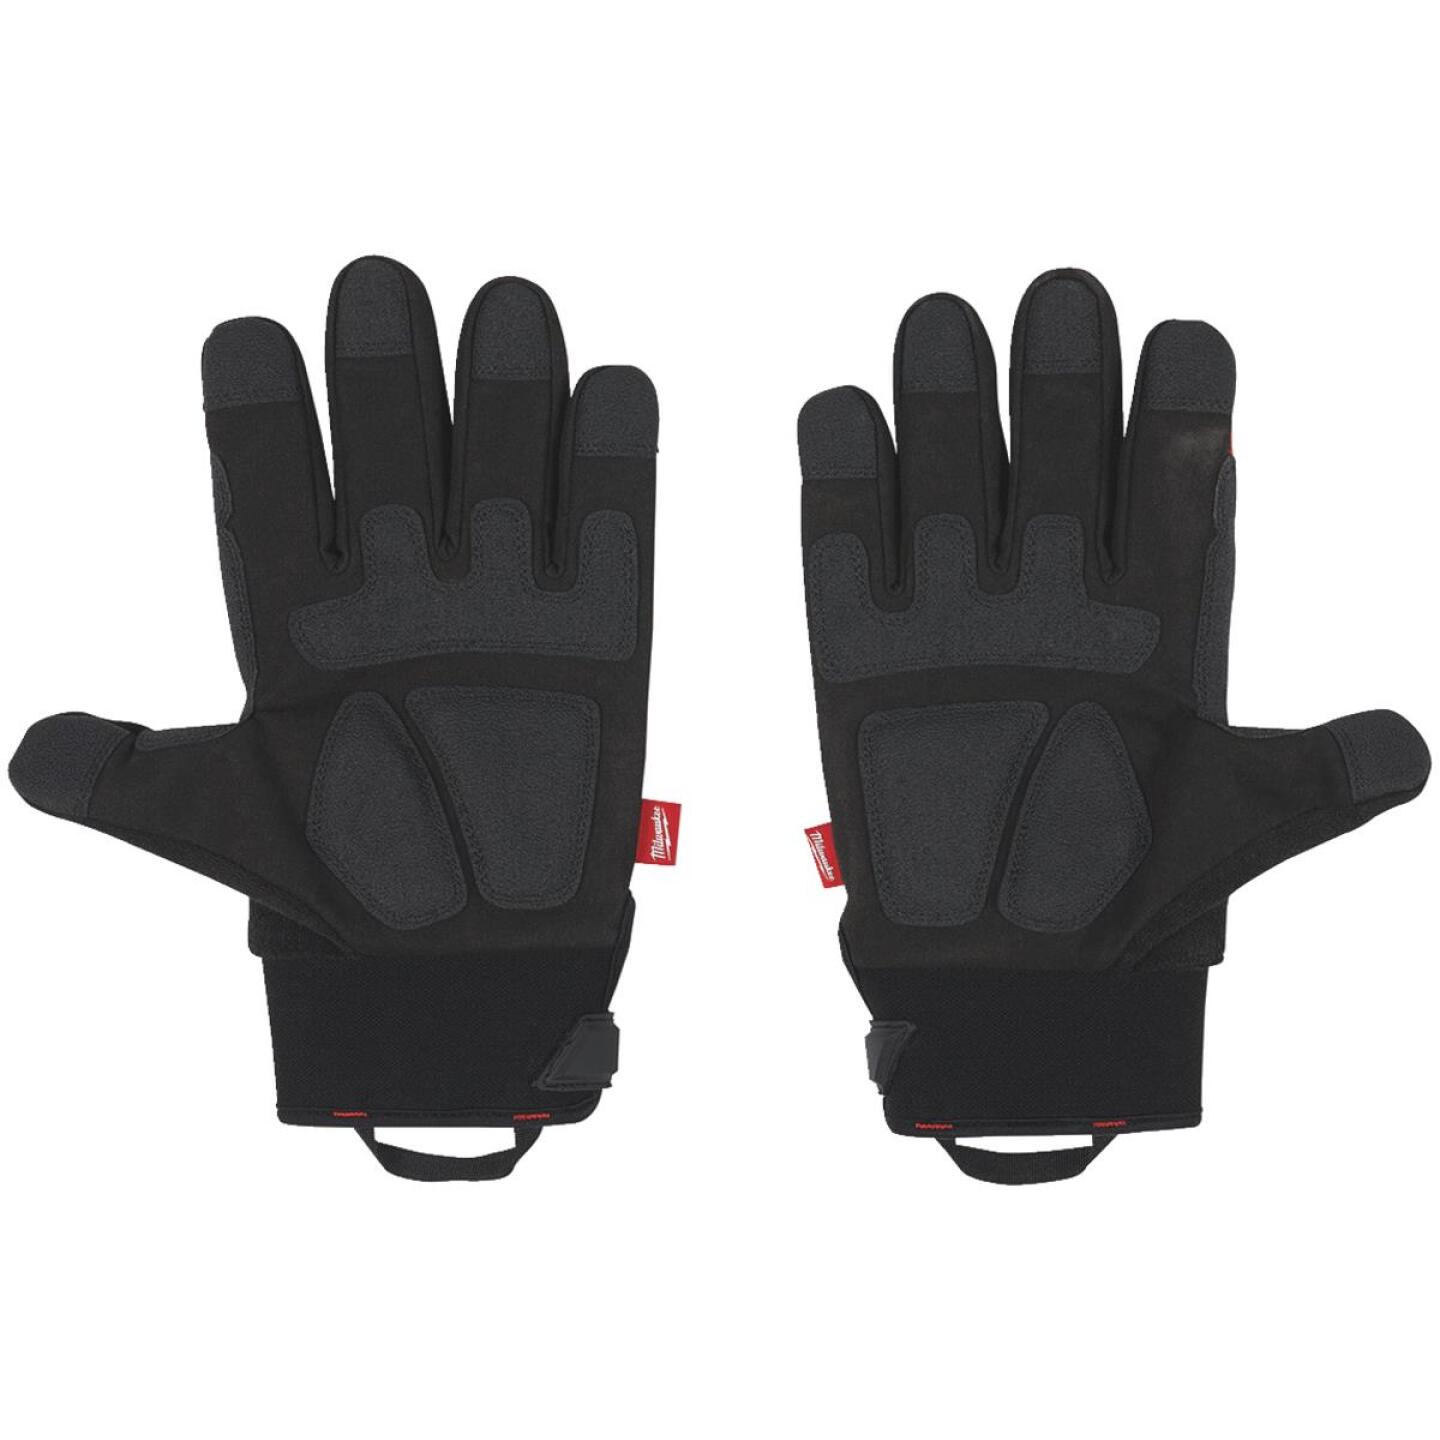 Milwaukee Men's Large Synthetic Winter Demolition Glove Image 3